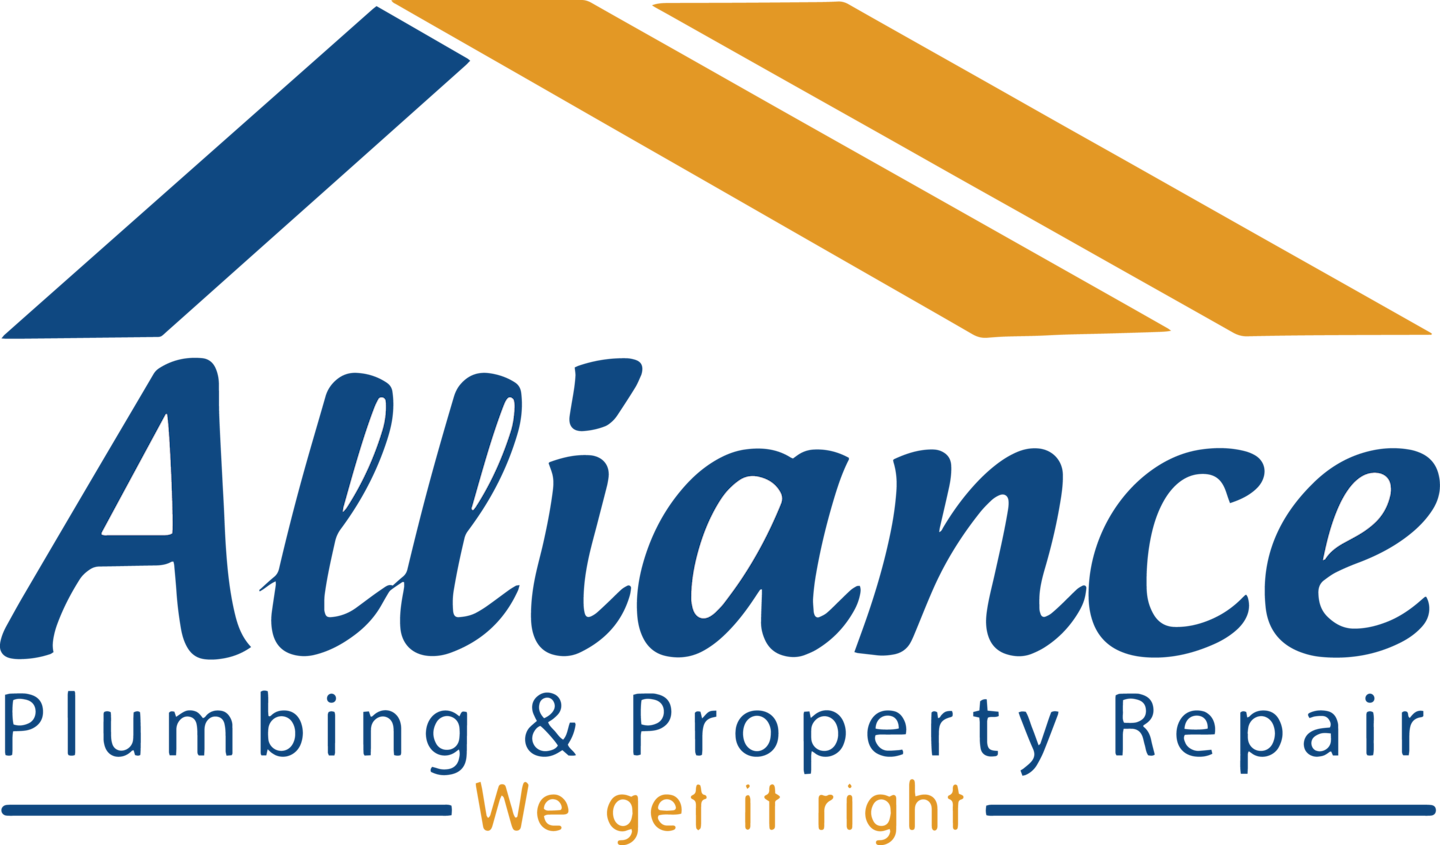 Alliance Plumbing & Property Repair